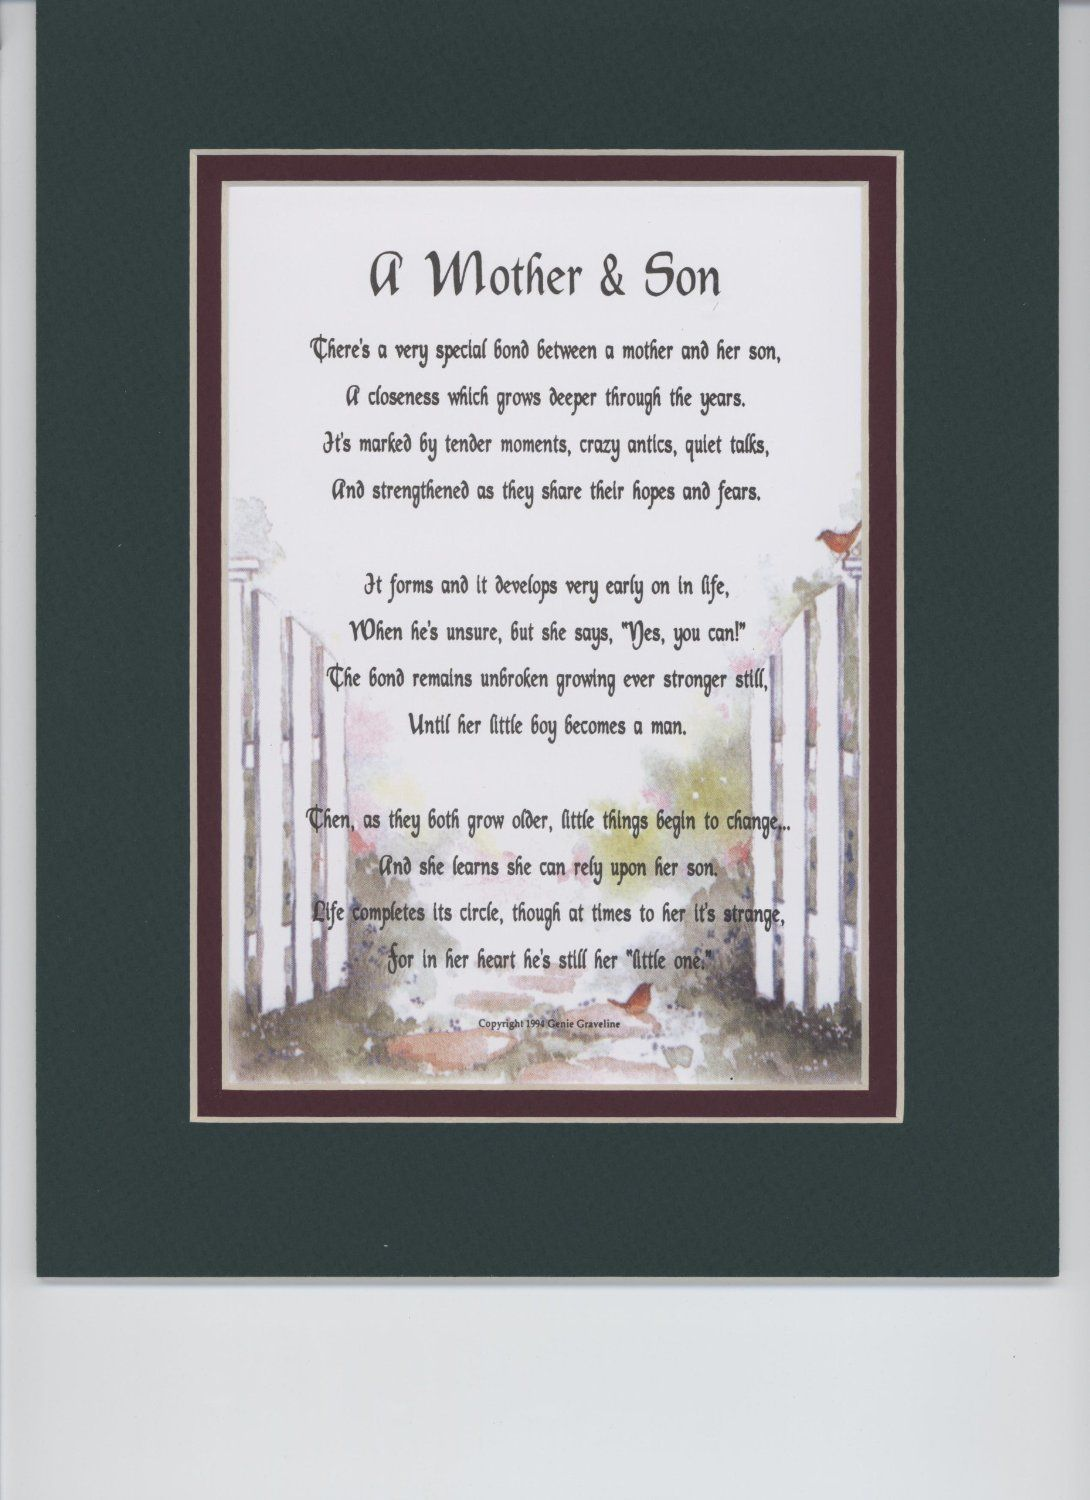 Wedding GiftA Mother Son Touching Poem Double Matted In Dark Green Over Burgundy And Enhanced With Watercolor Graphics A Gift For